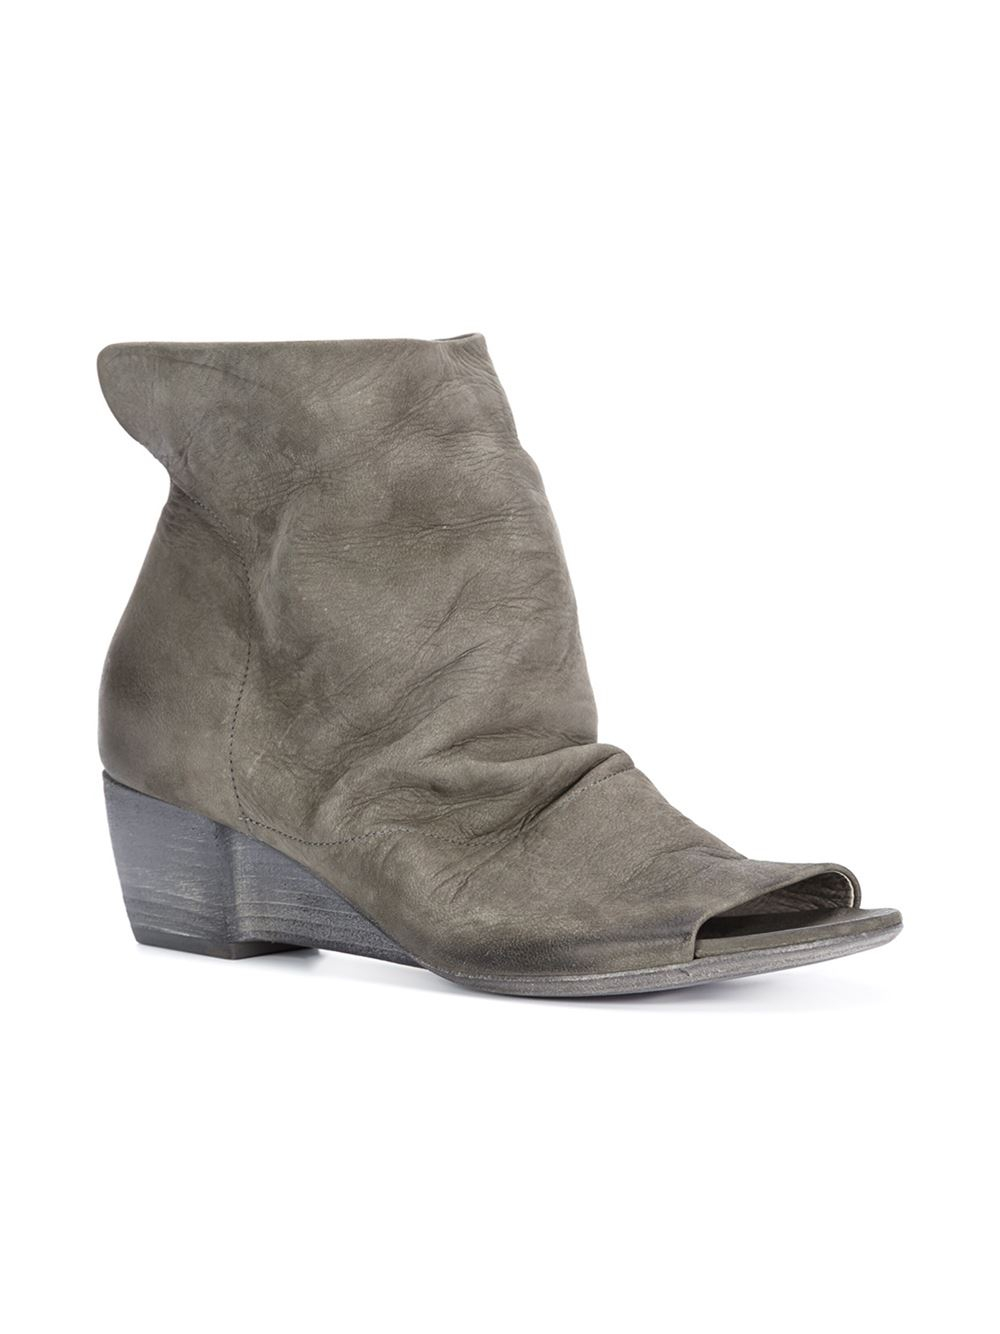 open toe boots - Black Mars Outlet Newest Pick A Best For Sale Discount Cheapest DTQG68zeqy